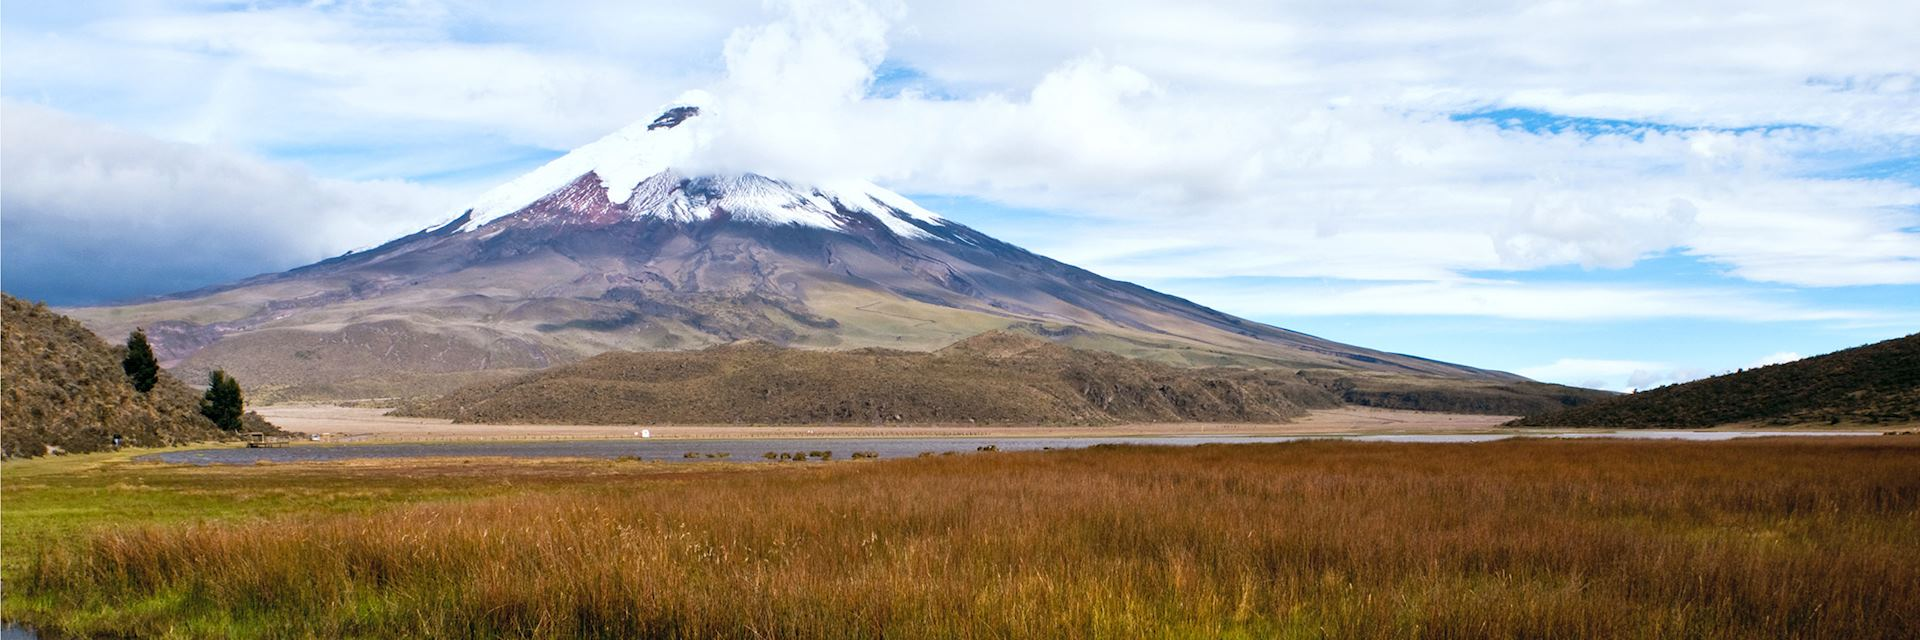 Limpiopungo Lagoon at the foot of the volcano Cotopaxi